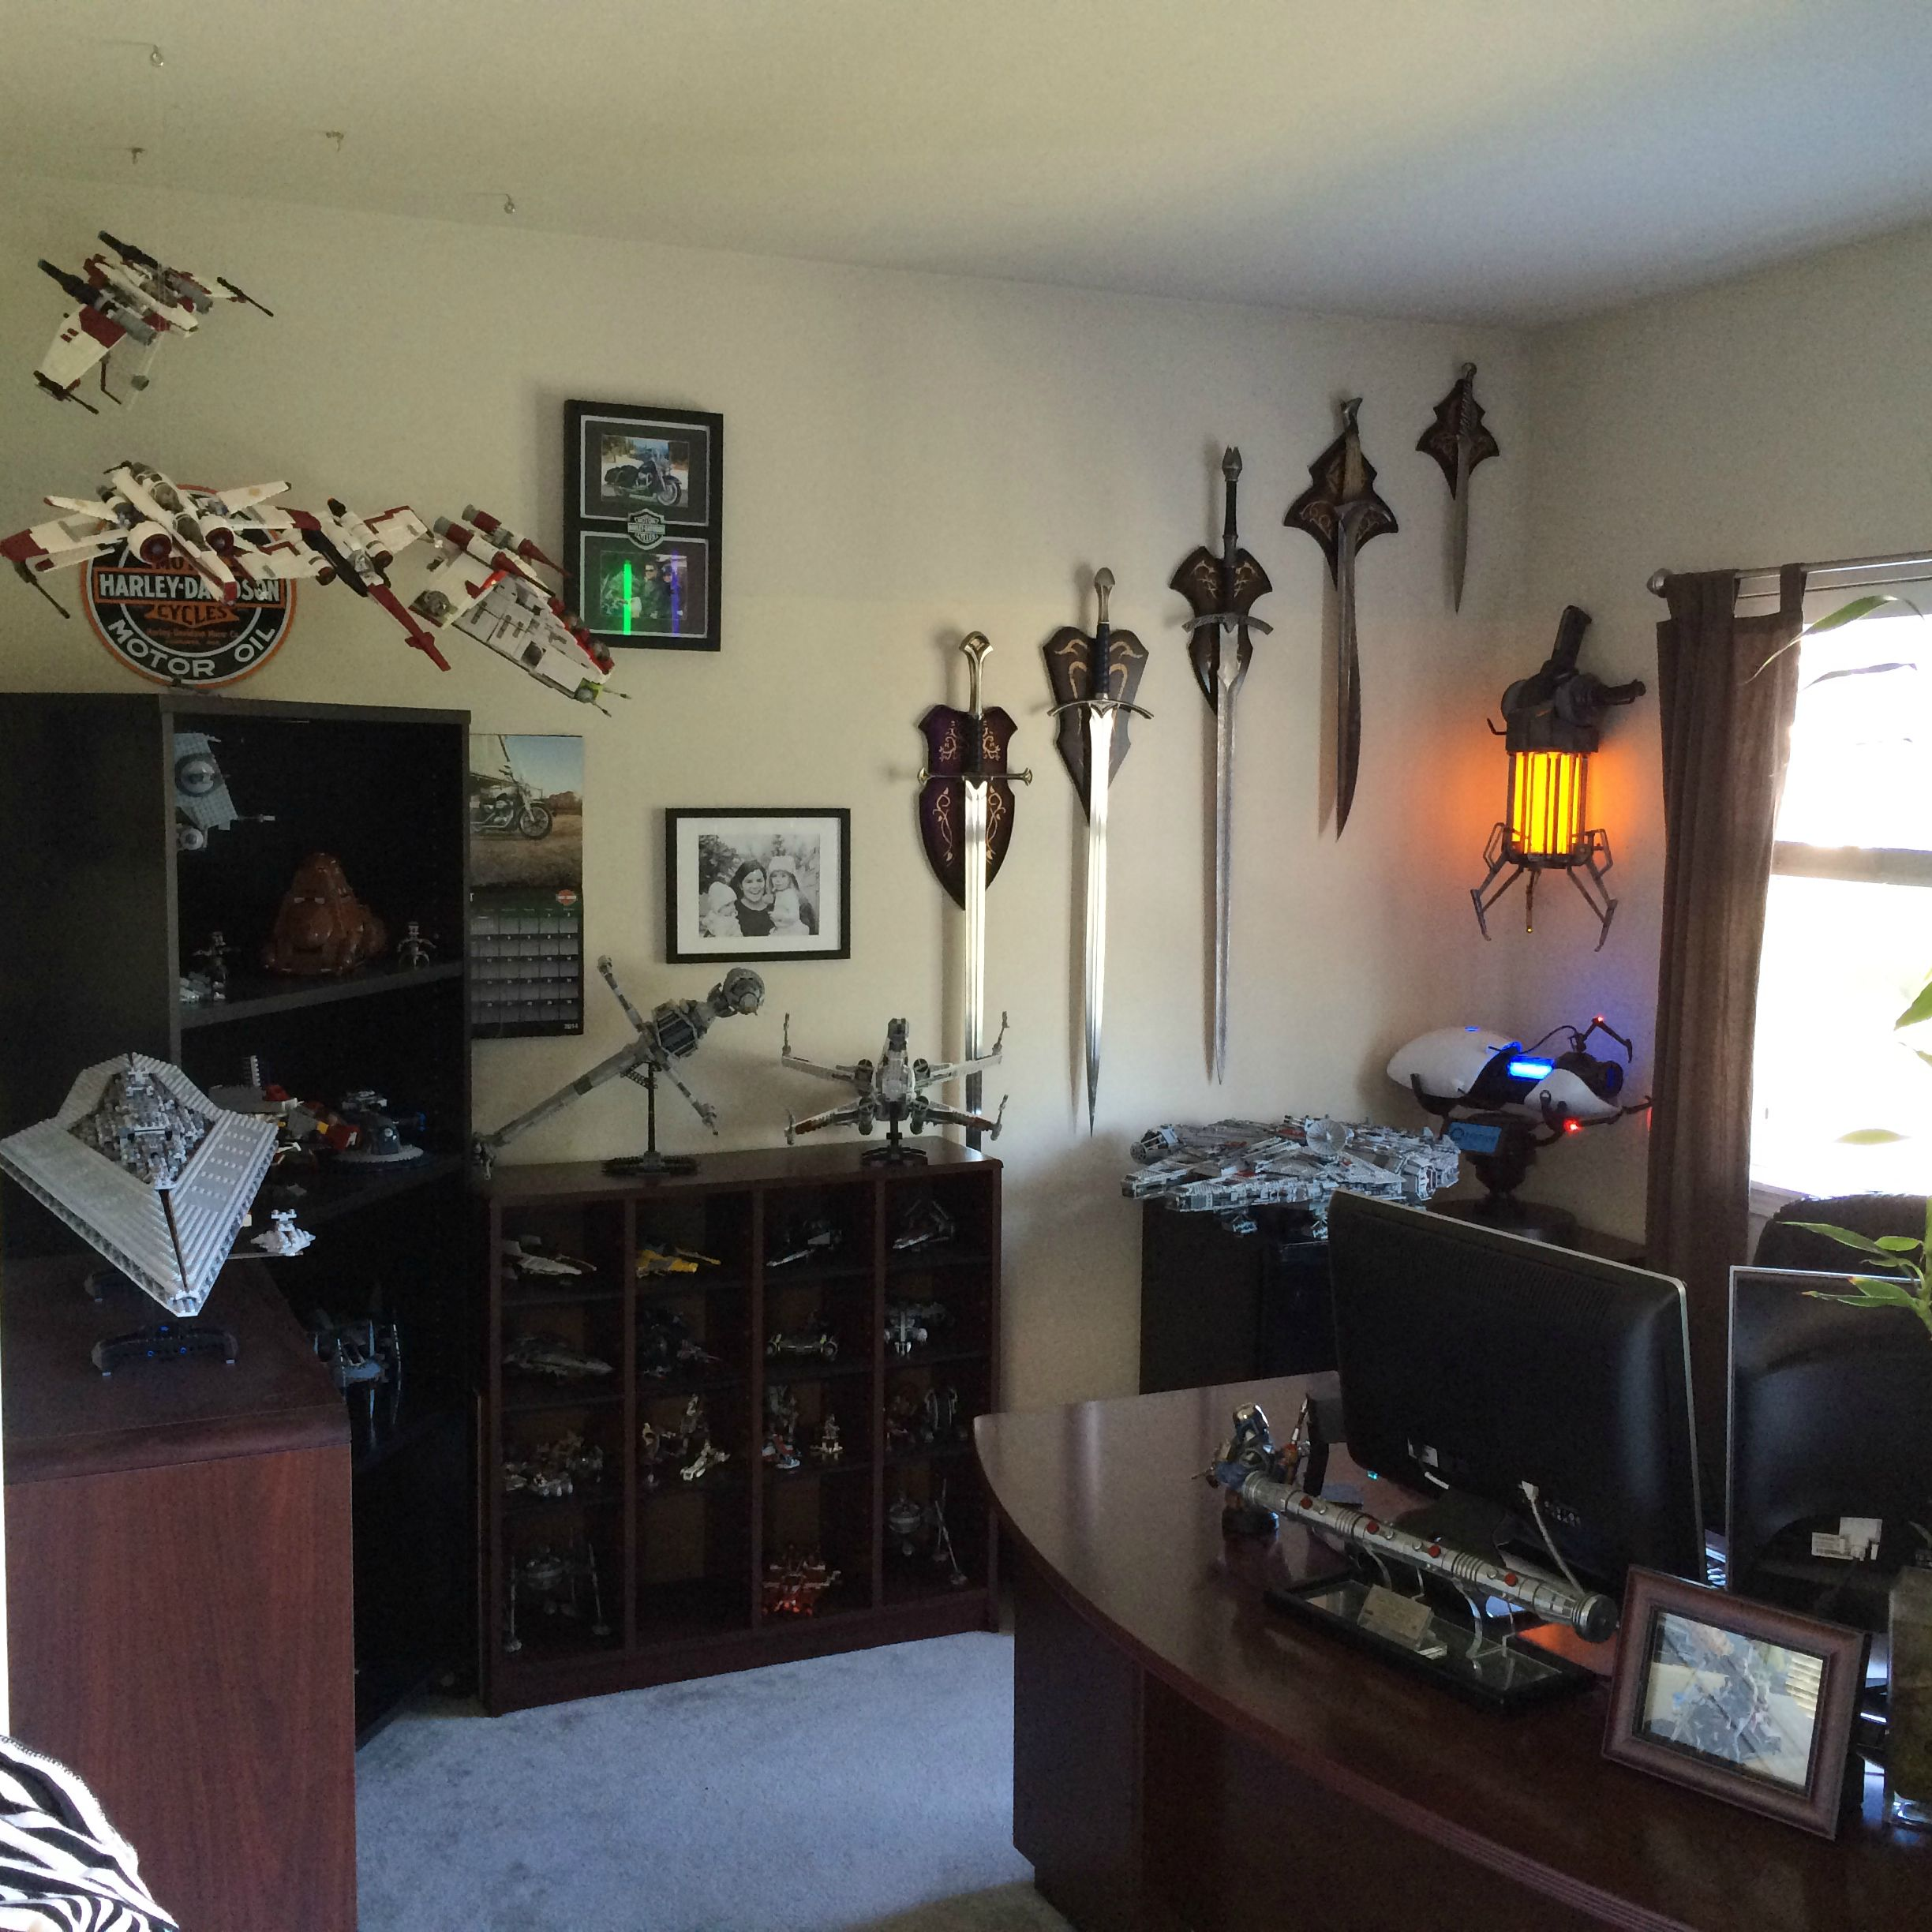 Geeky Home Decor Star Wars Room For The Man Who Grew Up Geeky Geek Decor